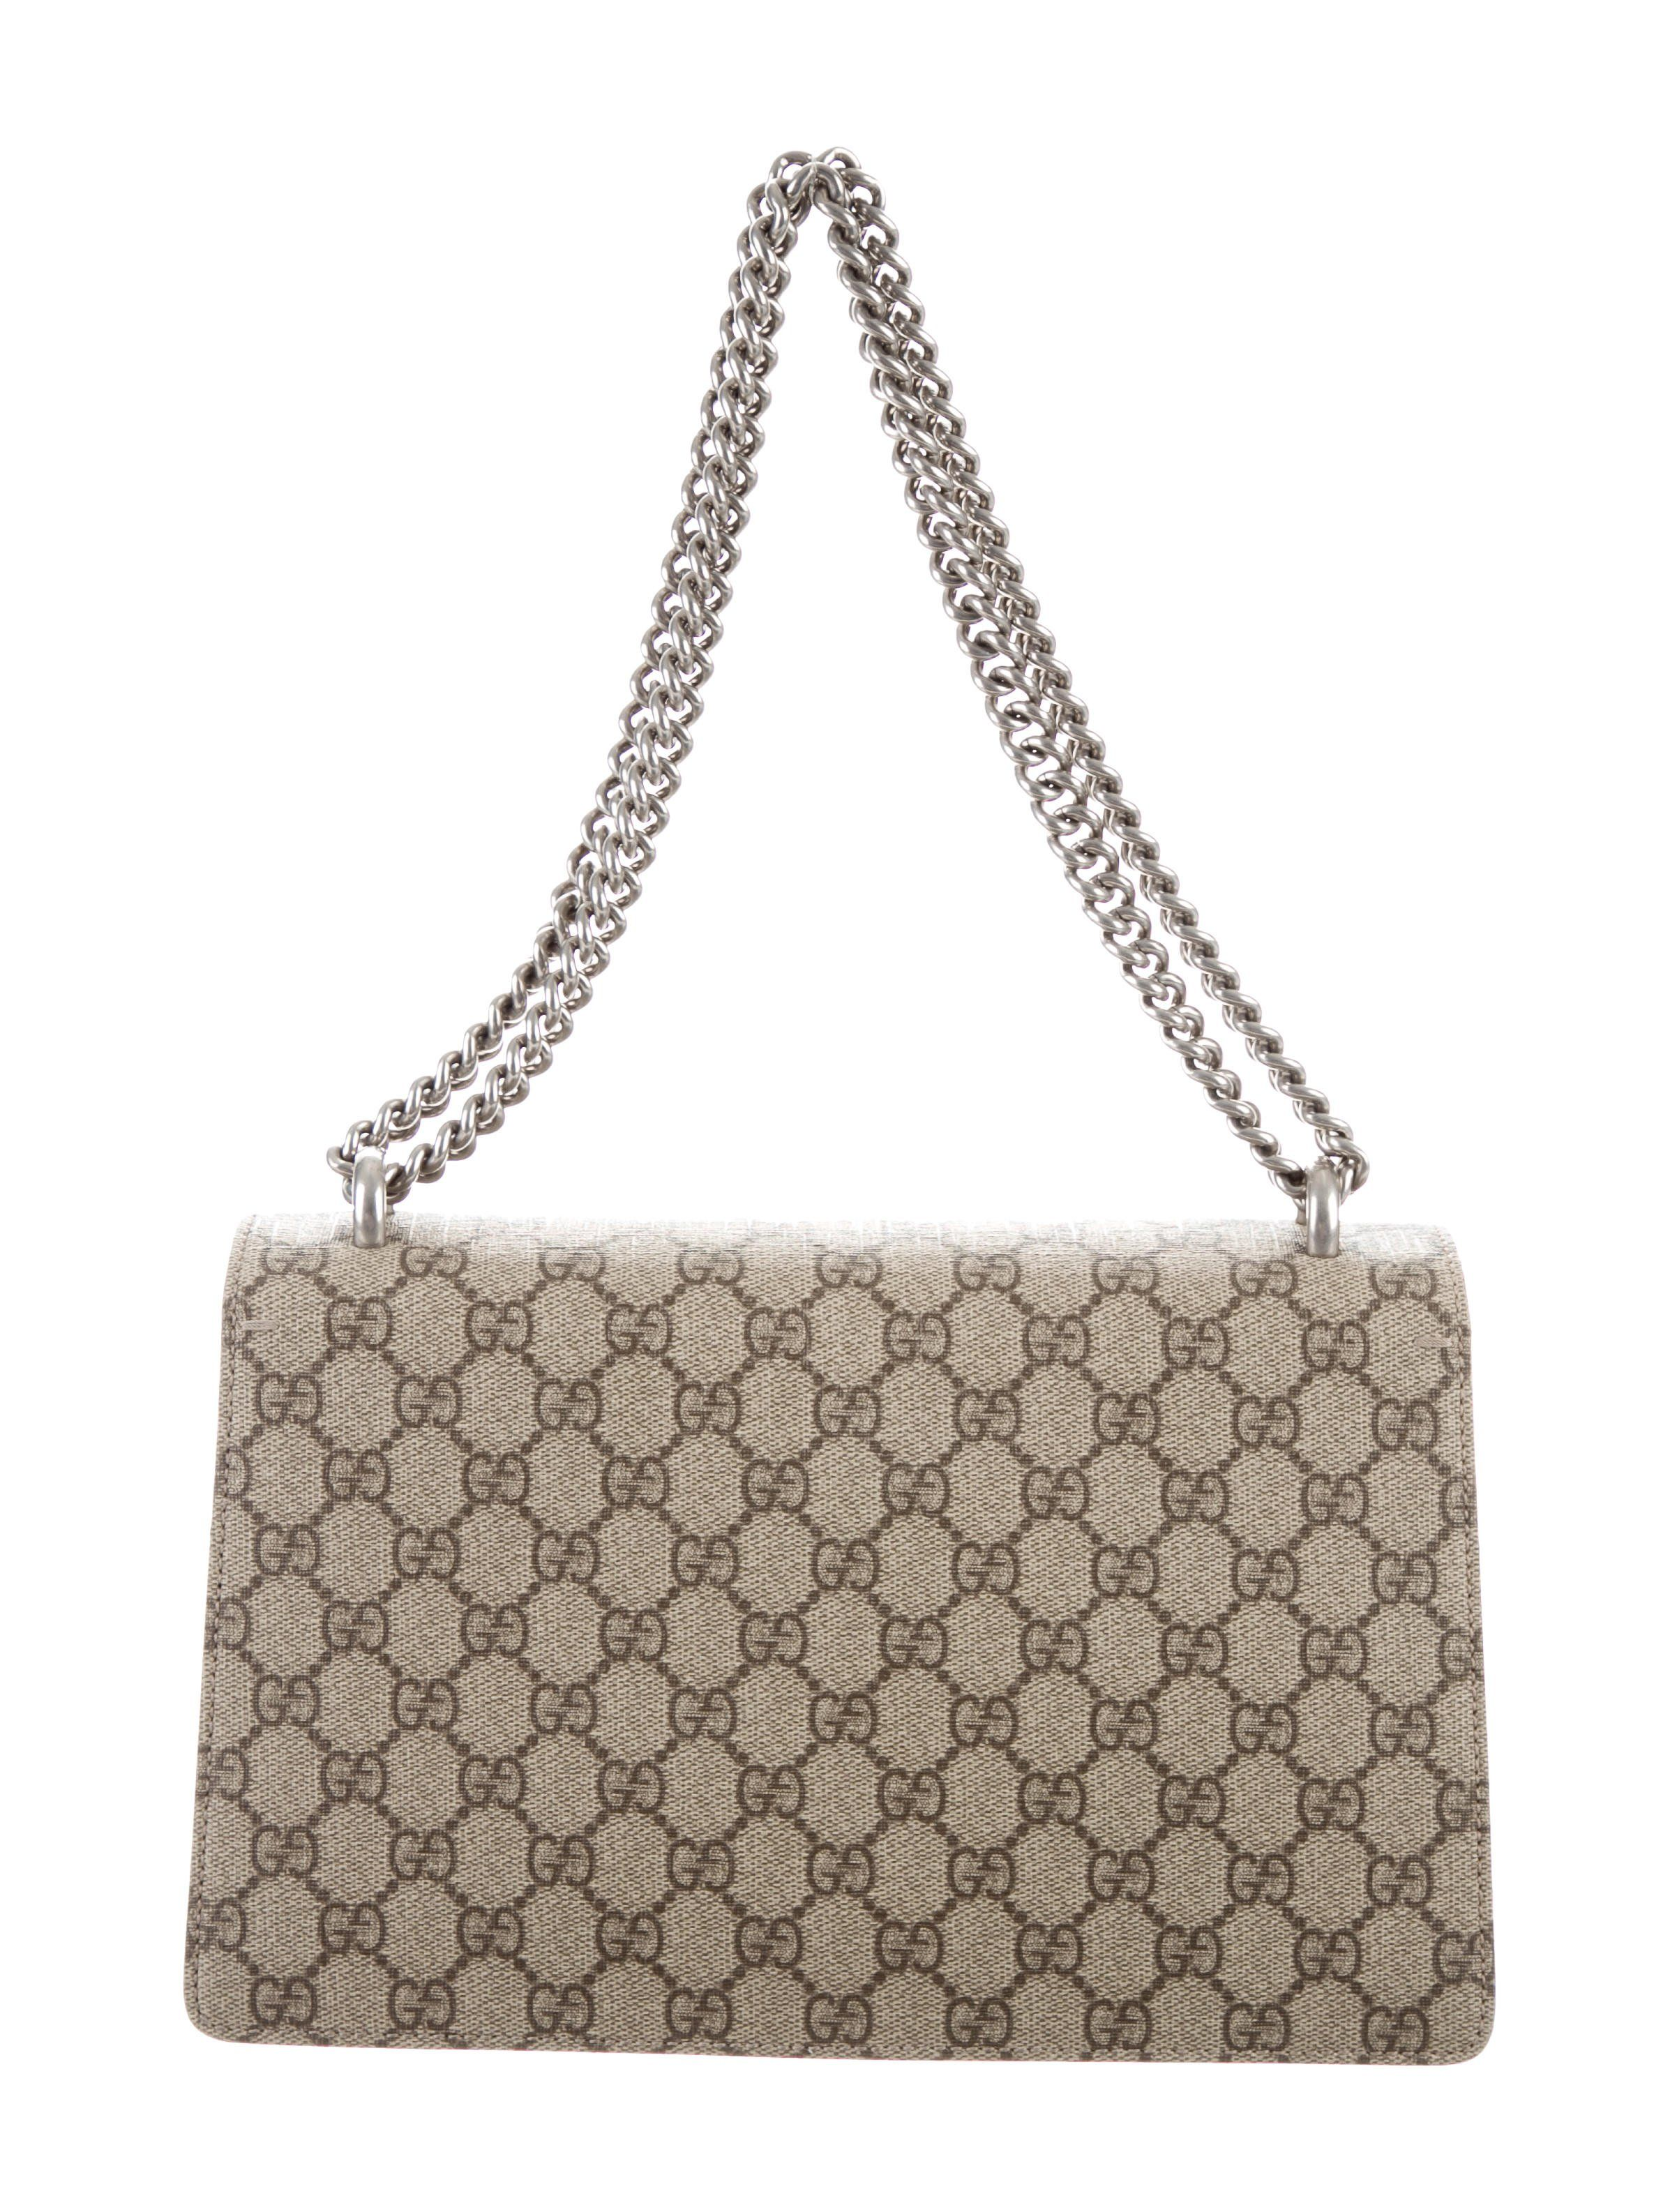 230715fec0c7 Beige and ebony GG Supreme coated canvas Gucci Small Dionysus shoulder bag  with antique silver-tone hardware, beige suede trim, adjustable chain-link  ...